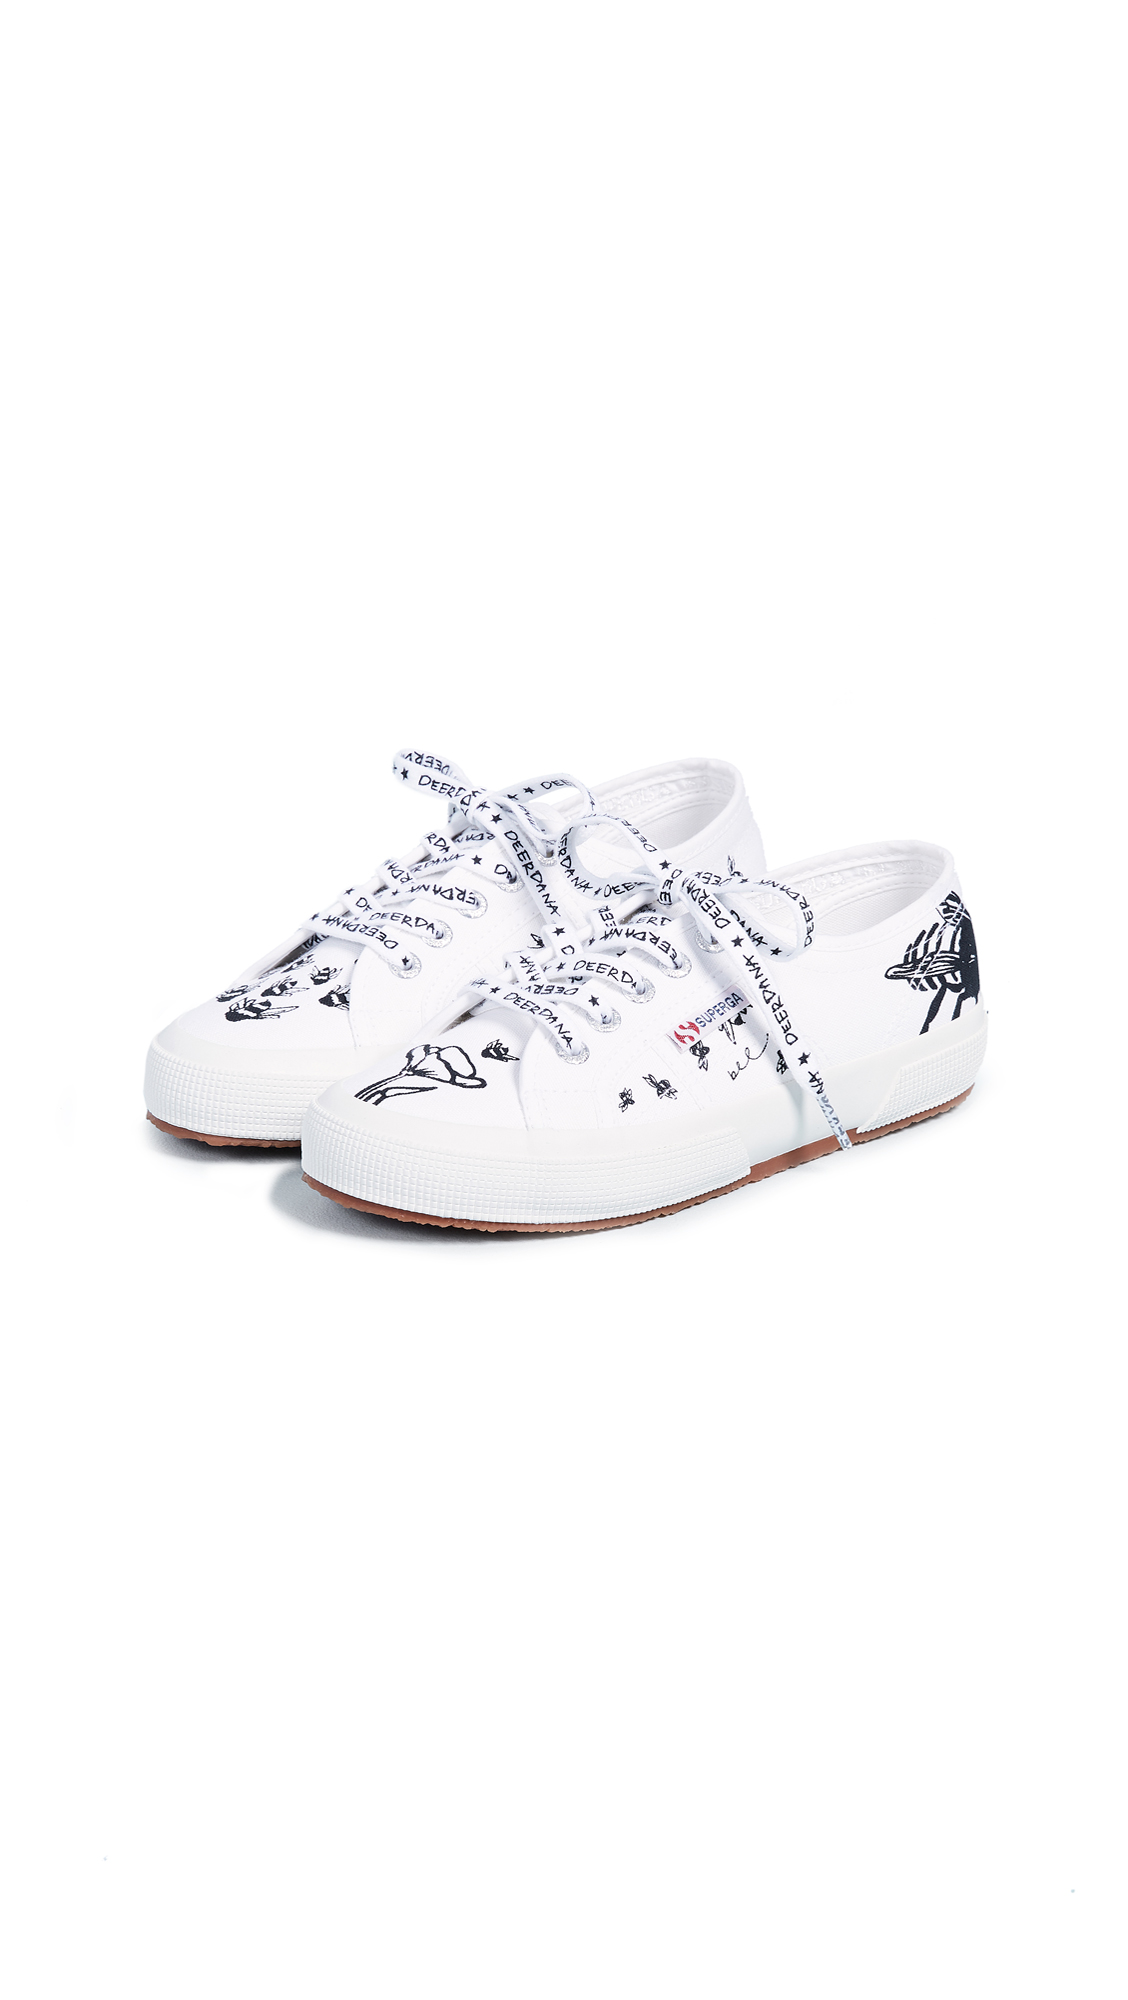 Superga 2750 Deer Dana Bees Sneakers - White